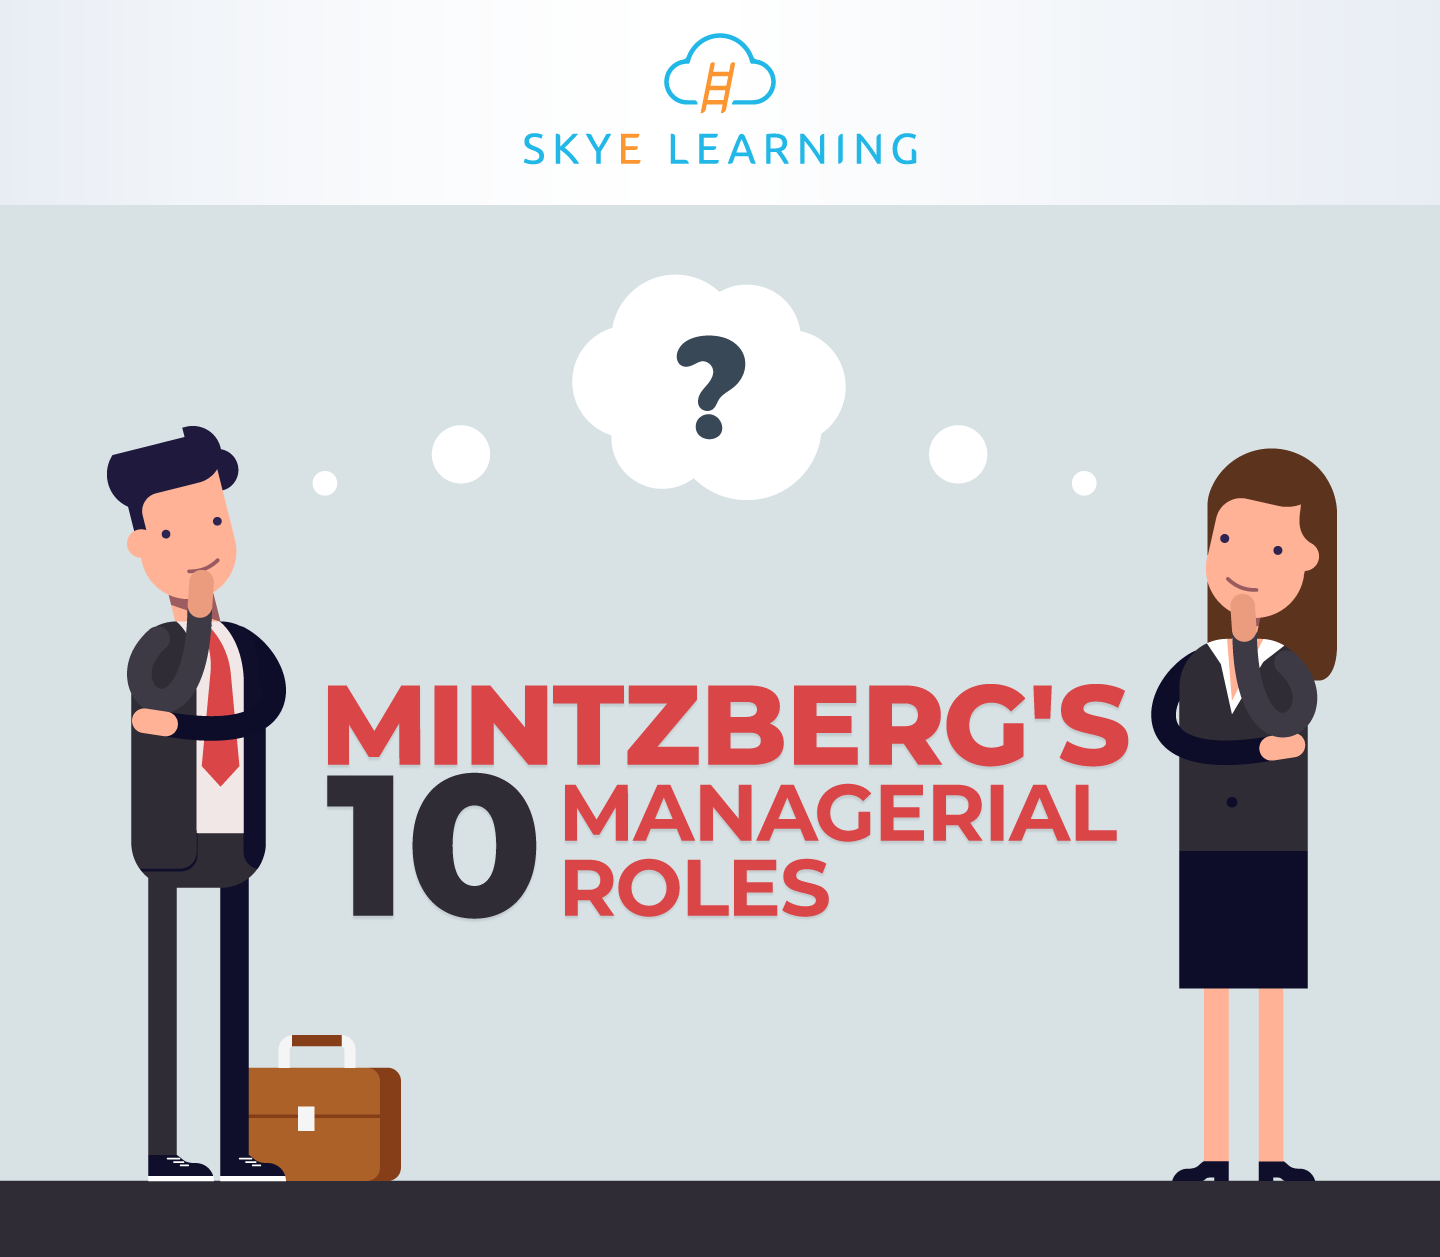 Mintzberg's-10-Managerial-Roles-SL-IG-truncated